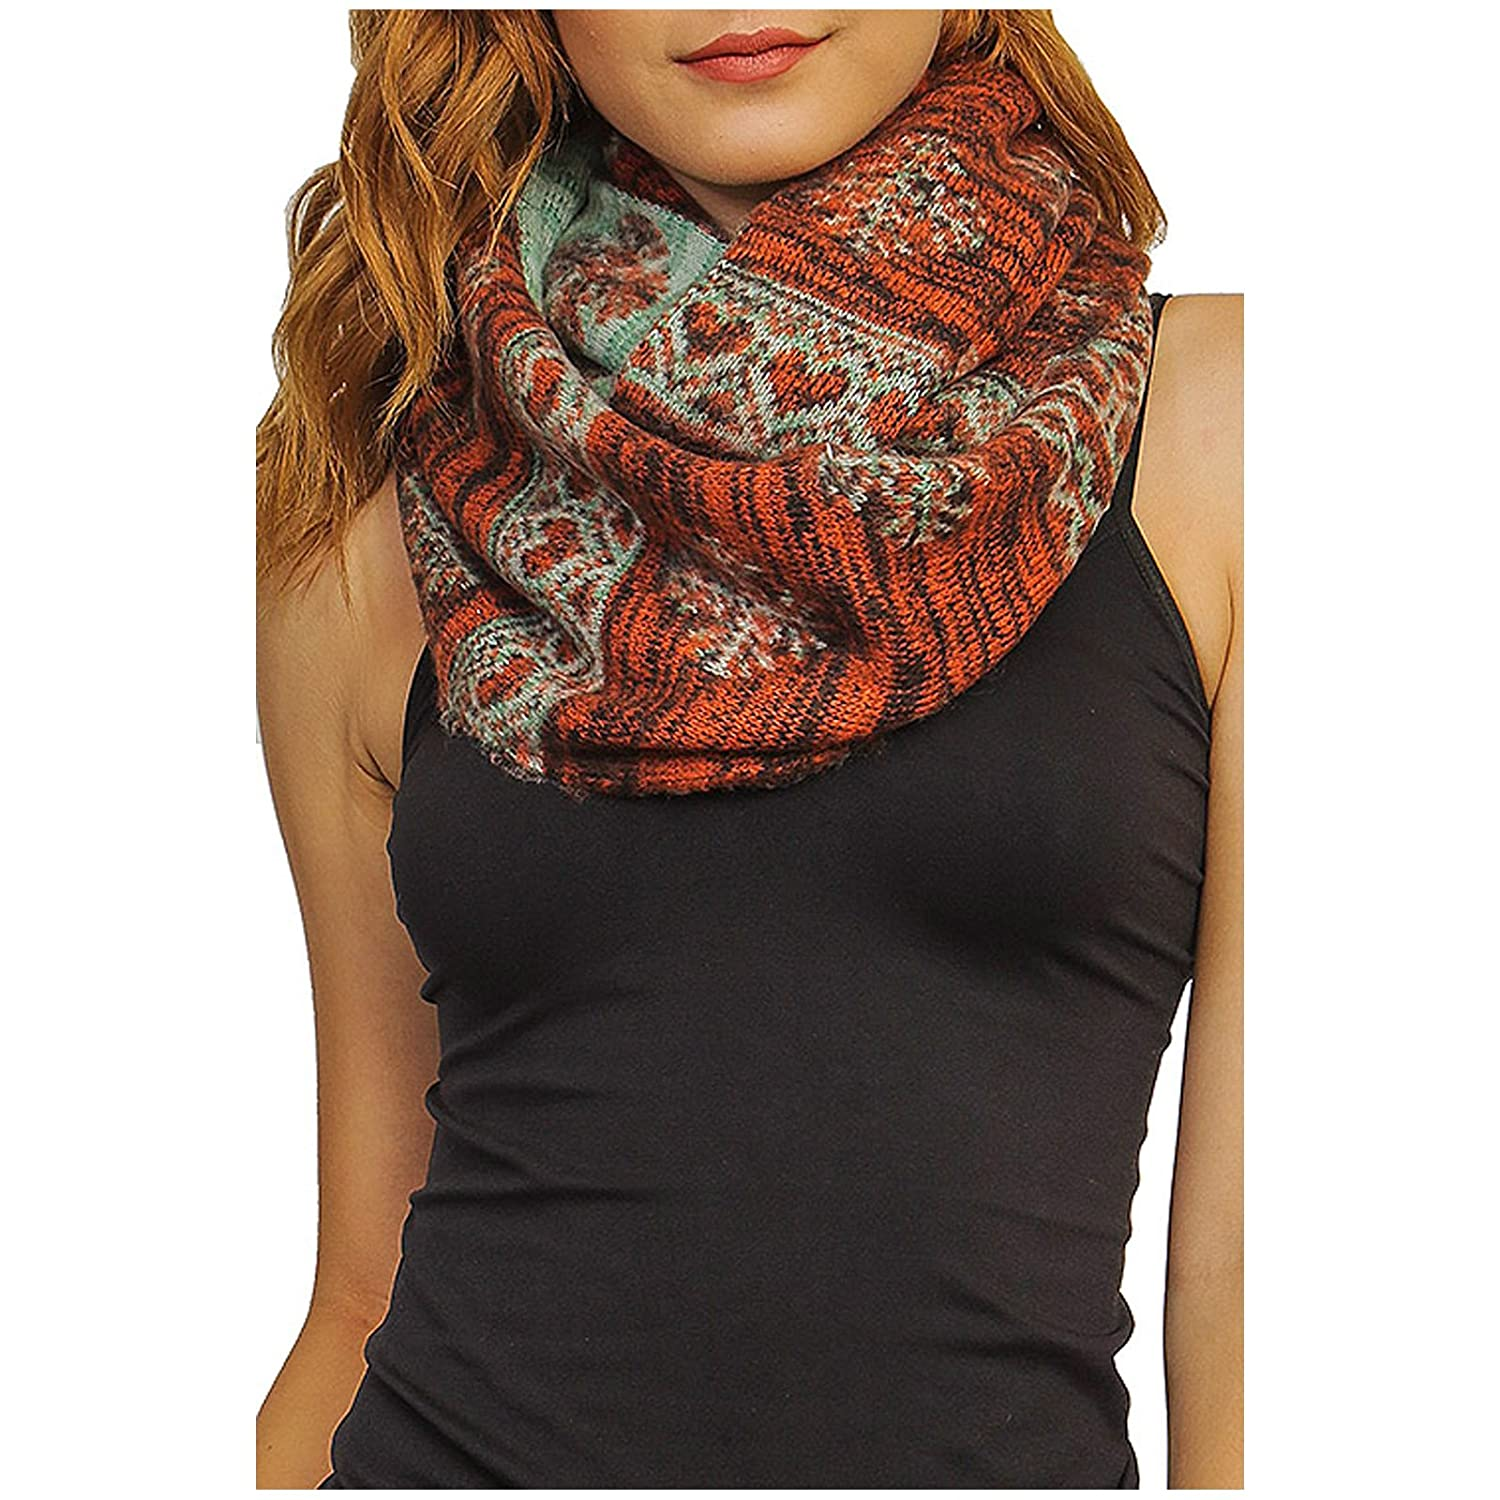 Women's Winter Warm Reversible Heart And Snowflake Cozy Infinity Scarf - WI786